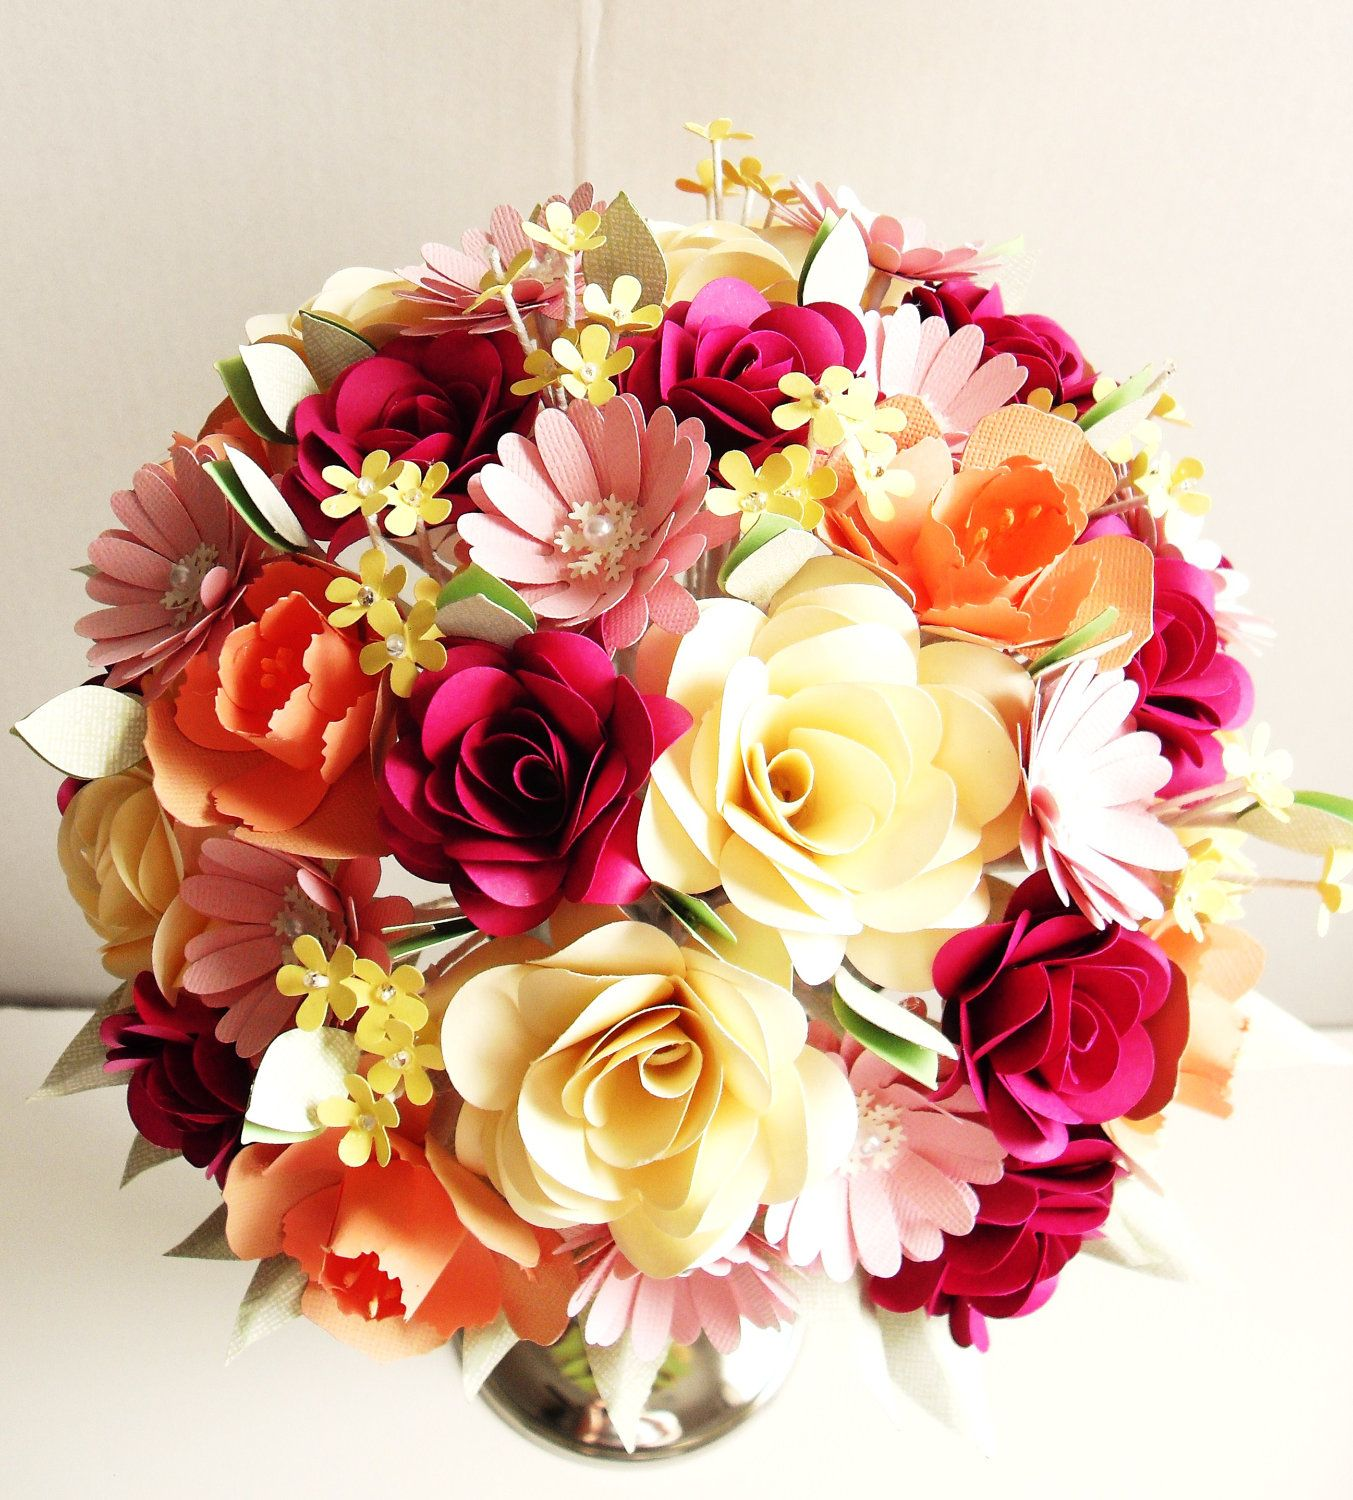 Traditional paper flower bouquet flower bouquets flower and flowers traditional paper flower bouquet izmirmasajfo Choice Image